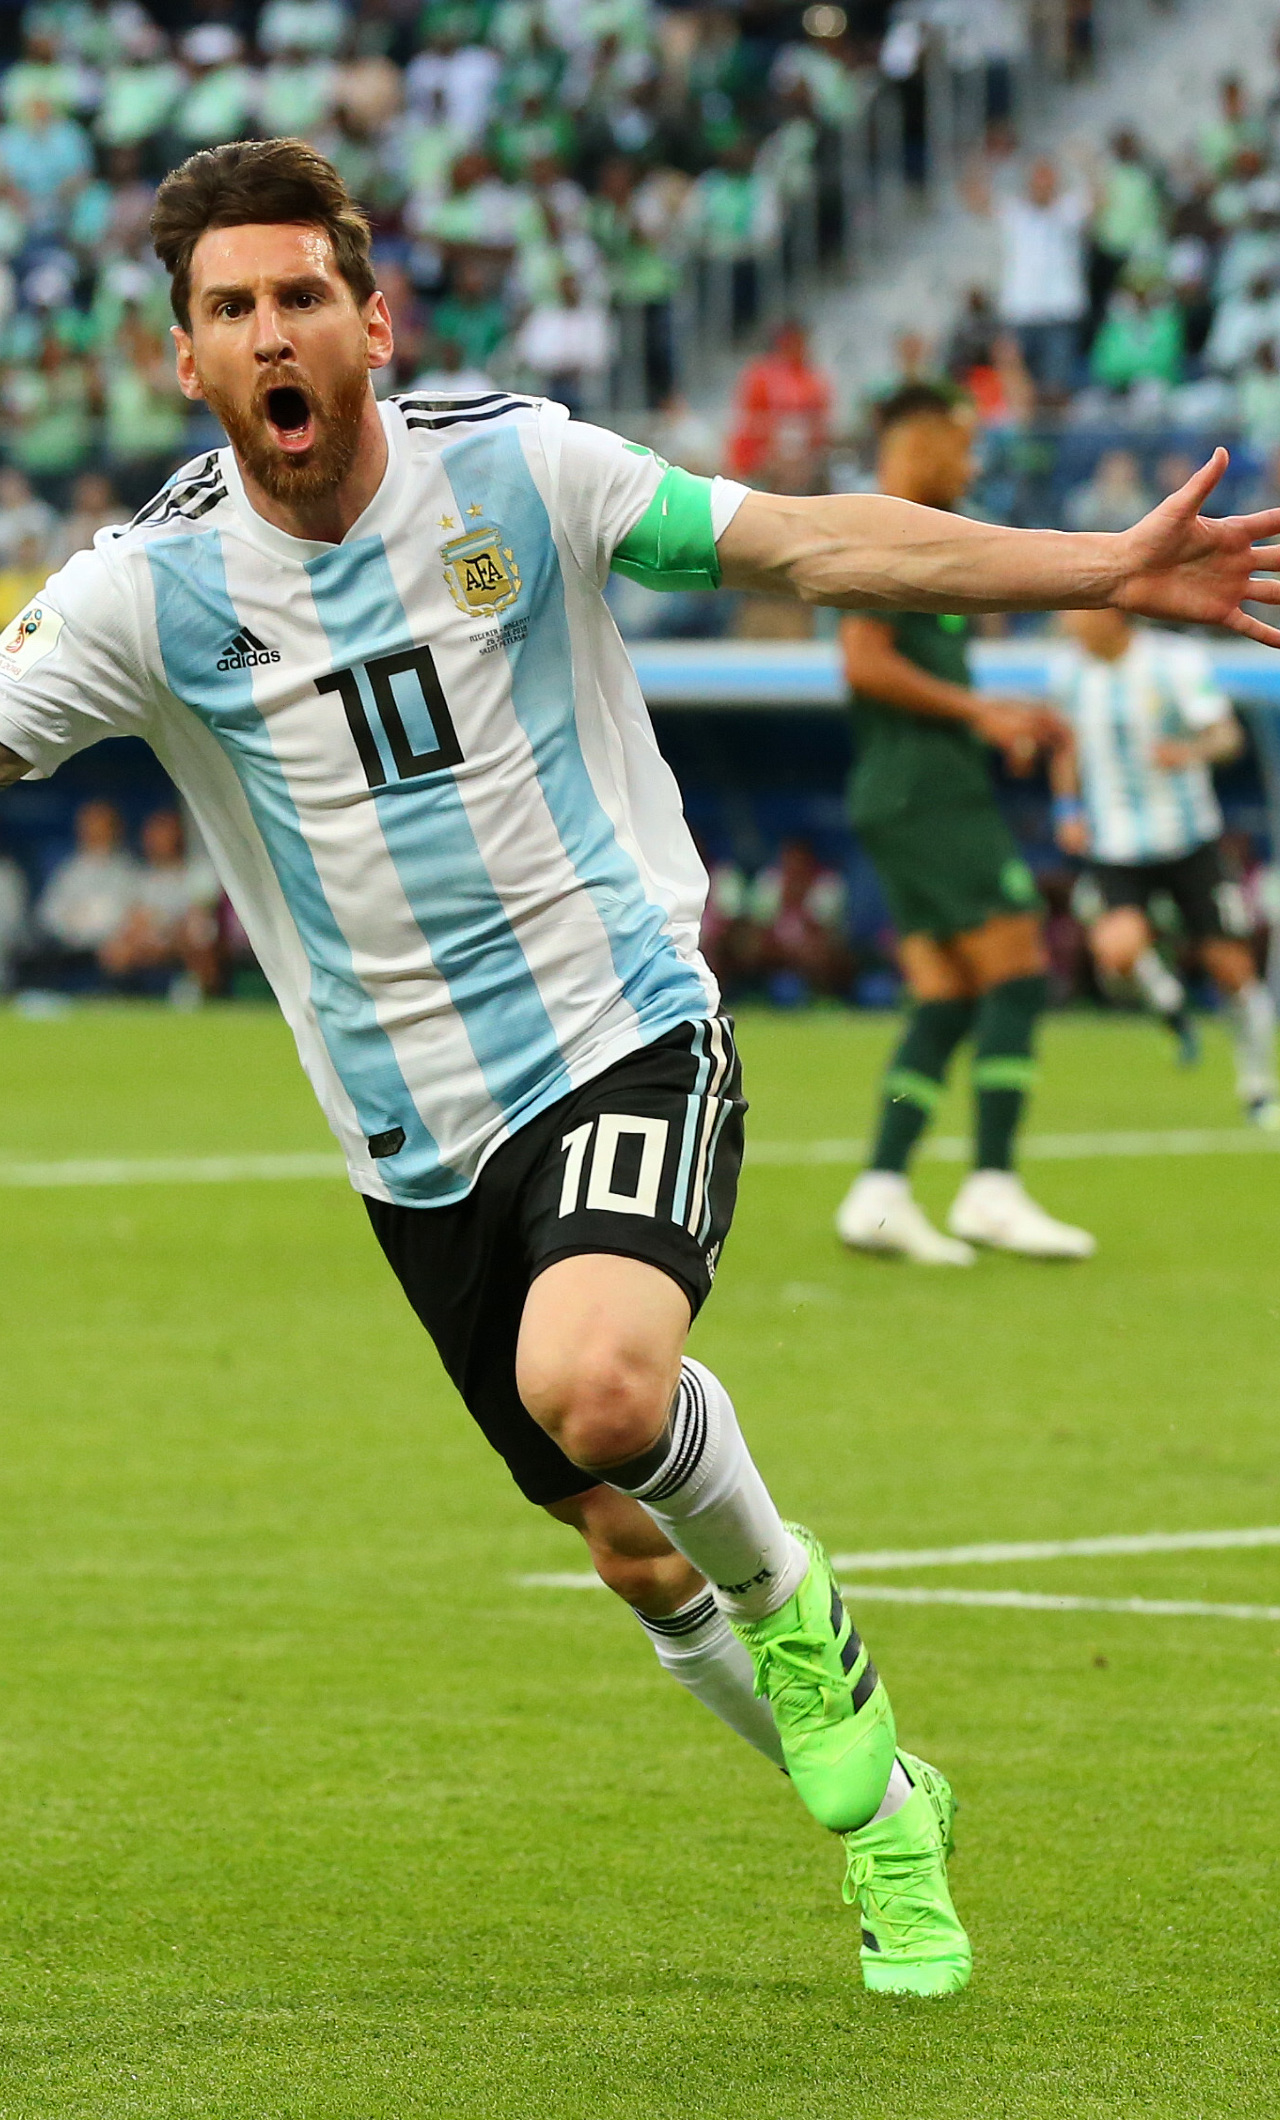 1280x2120 Lionel Messi In Fifa 2018 World Cup Iphone 6 Plus Wallpaper Hd Sports 4k Wallpapers Images Photos And Background